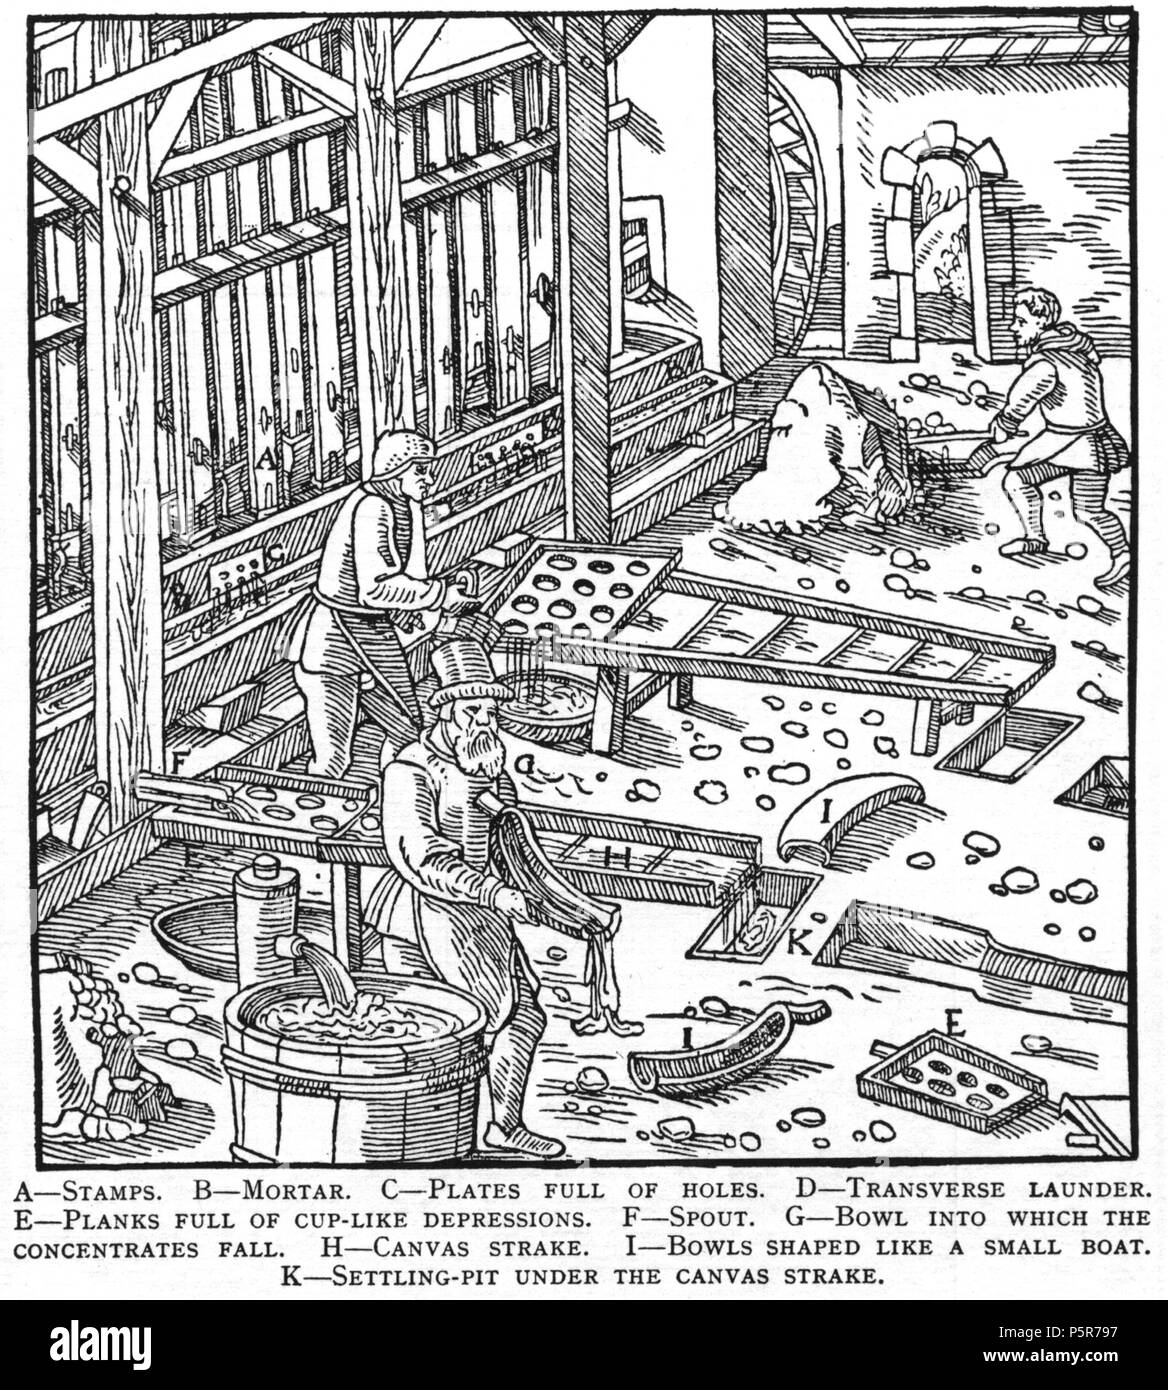 N/A. Woodcut illustration from De re metallica by Georgius Agricola. This is a 300dpi scan from the 1950 Dover edition of the 1913 Hoover translation of the 1556 reference. The Dover edition has slightly smaller size prints than the Hoover (which is a rare book). The woodcuts were recreated for the 1913 printing. Filenames (except for the title page) indicate the chapter (2, 3, 5, etc.) followed by the sequential number of the illustration. 2 May 2005, 07:13:16. TCO (talk) 223 Book8-38 - Stock Image